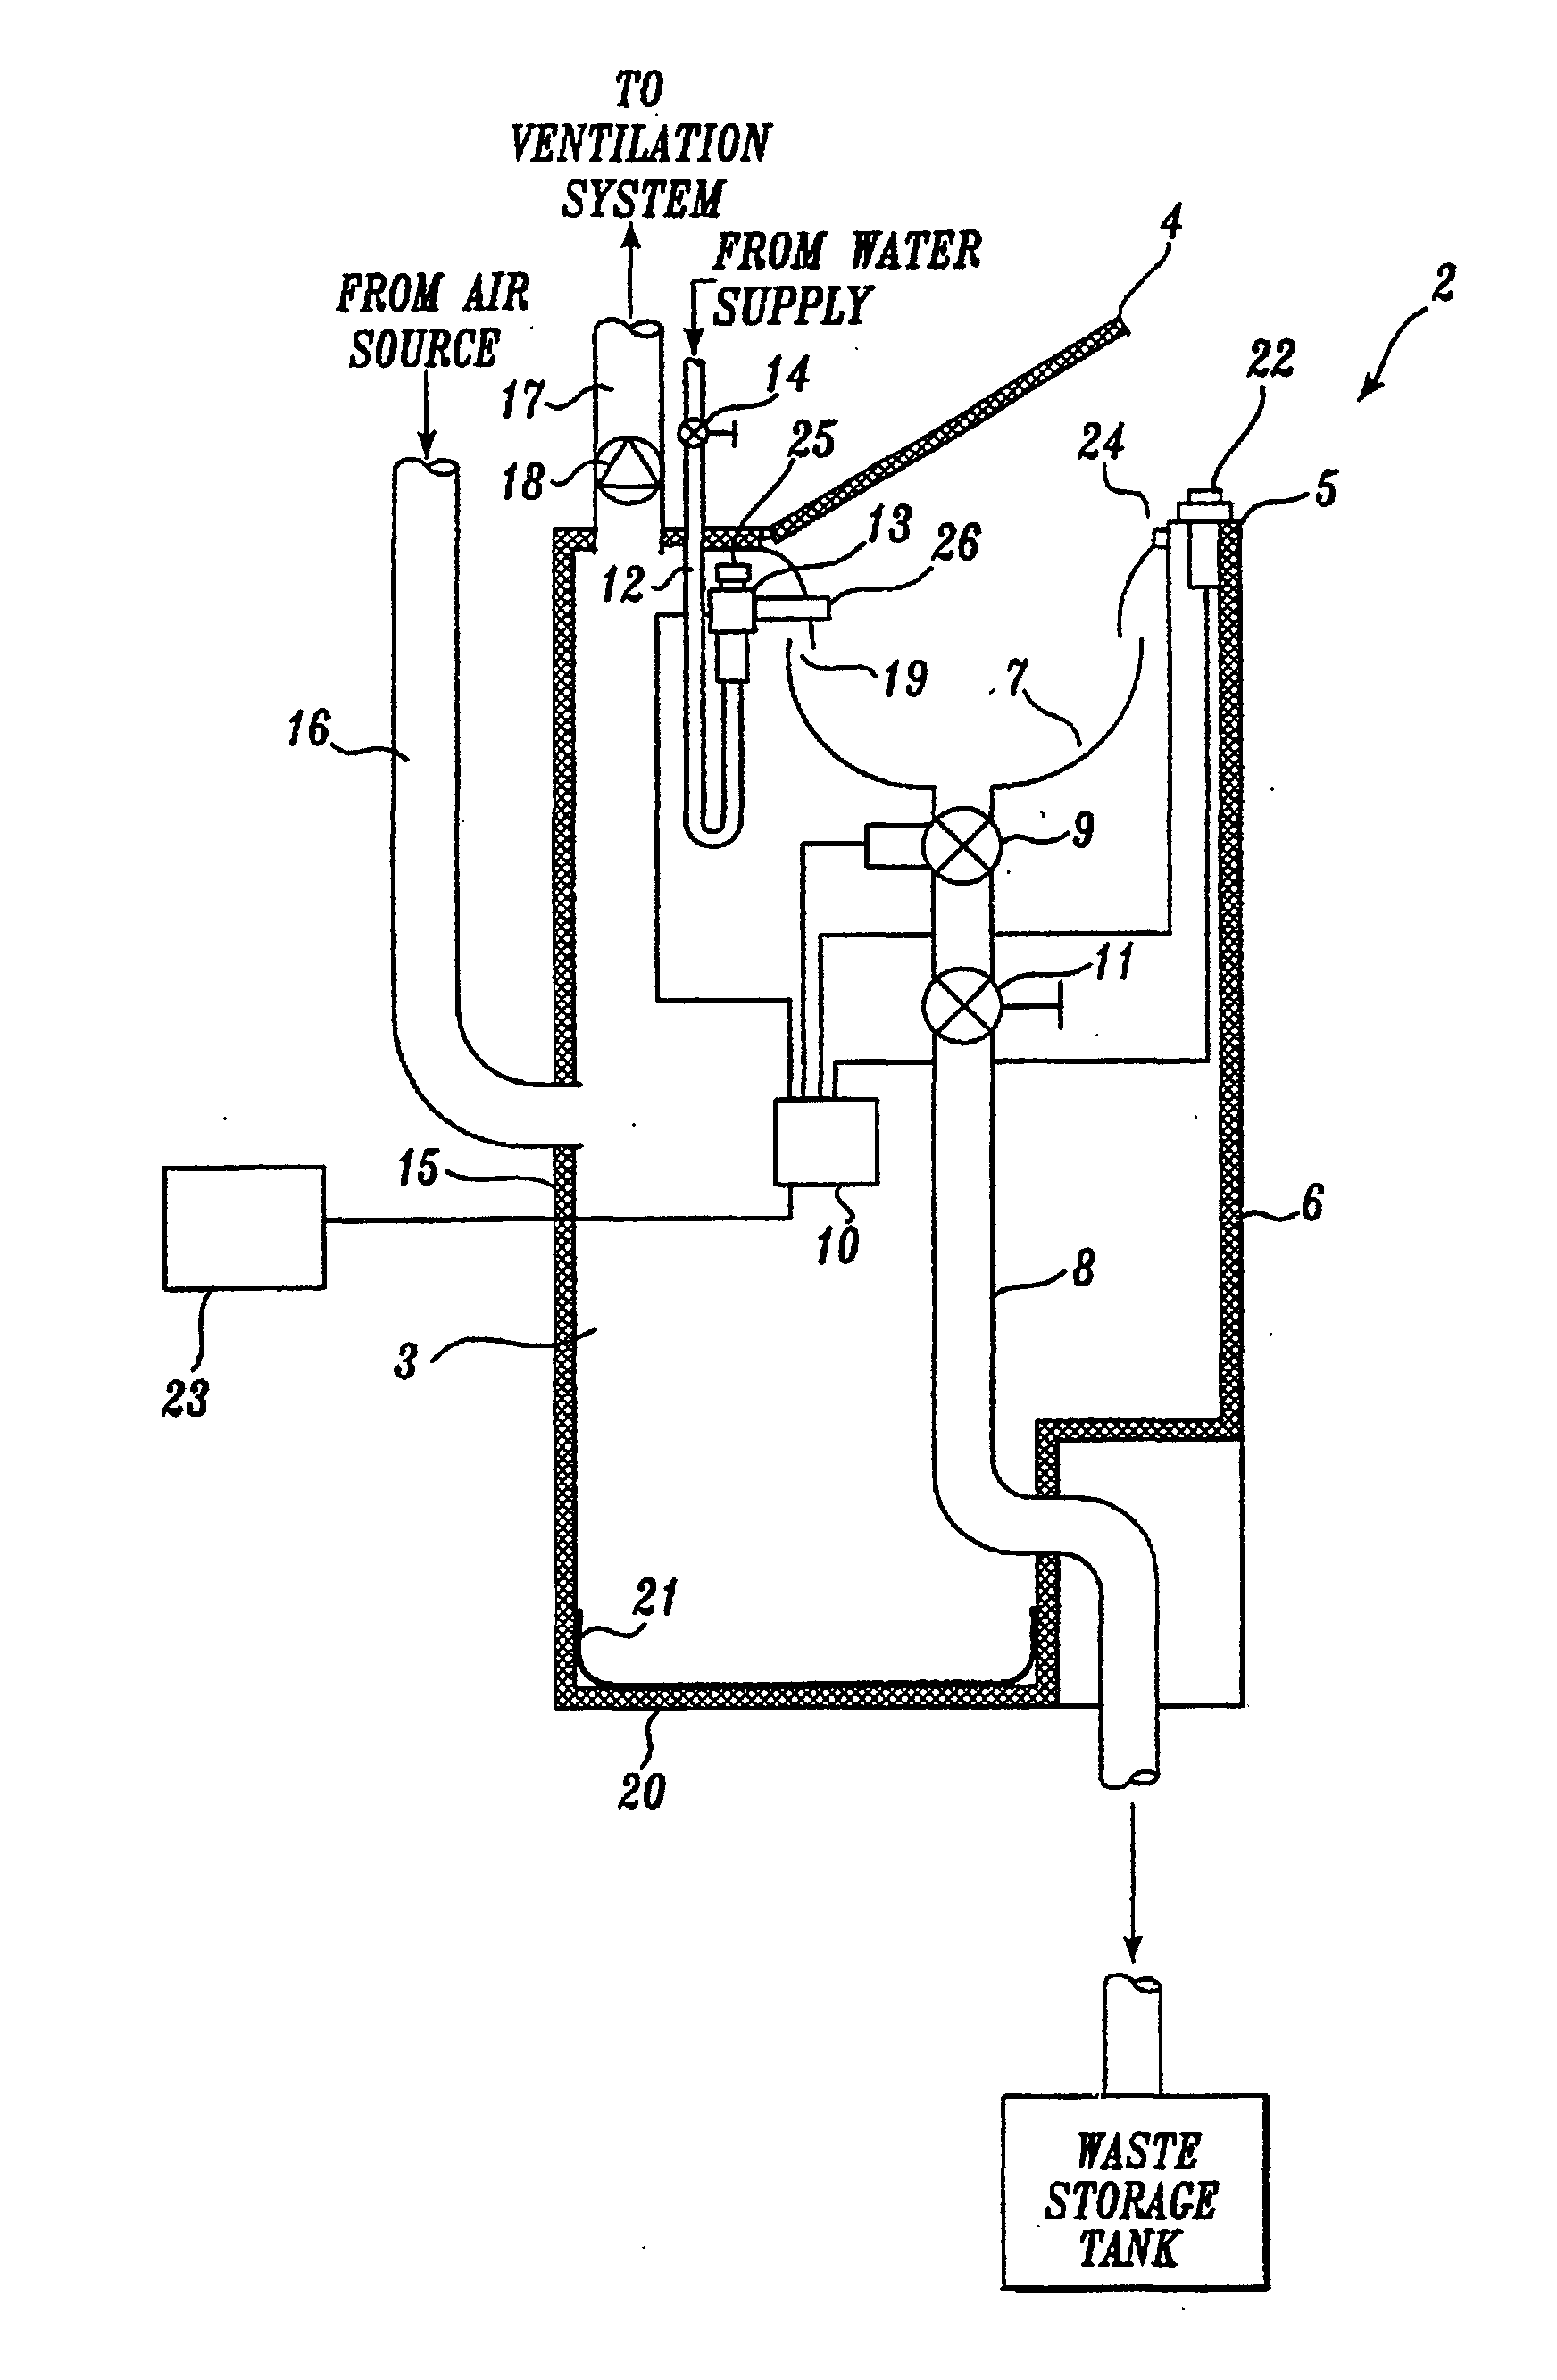 raven flow meter wiring diagram brain structures and functions valve actuator moreover 440